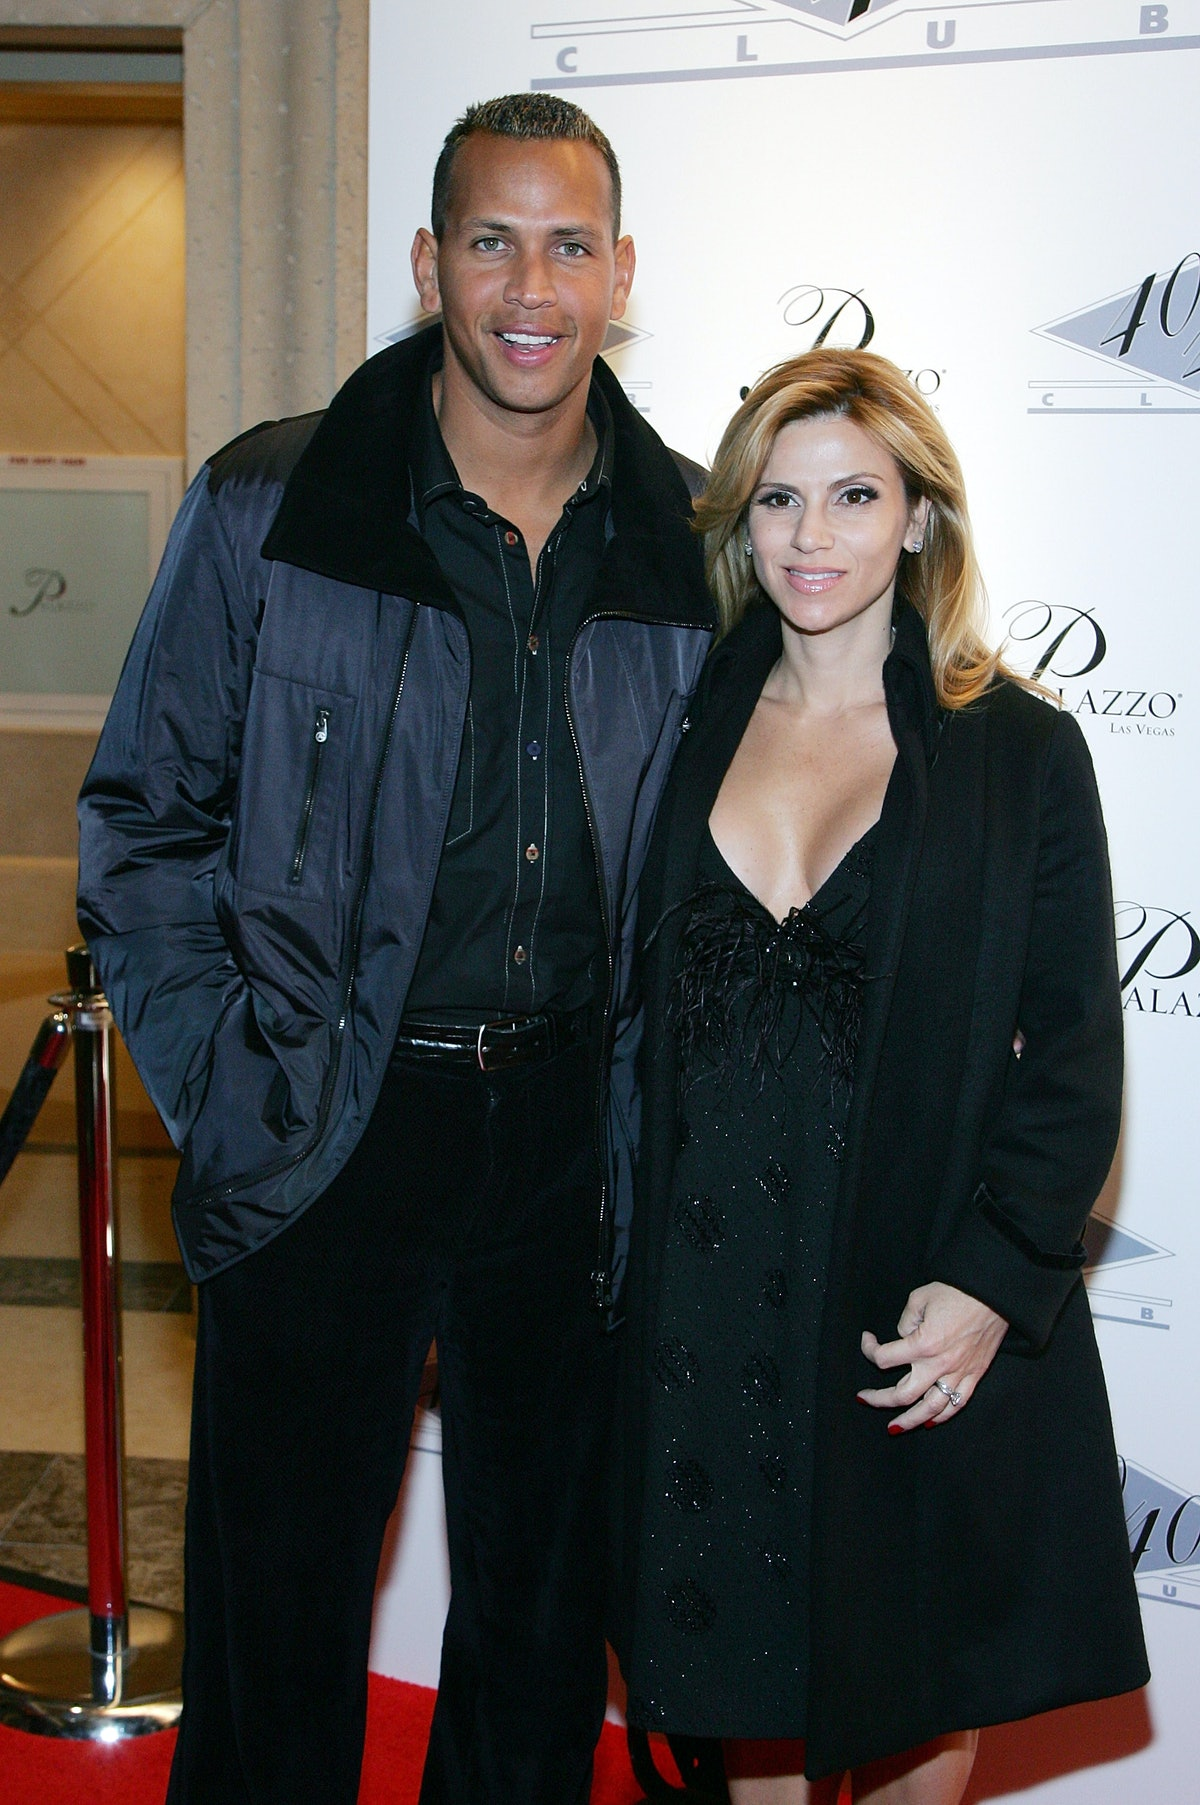 Alex Rodriguez reunited with ex-wife Cynthia Scurtis on Instagram.